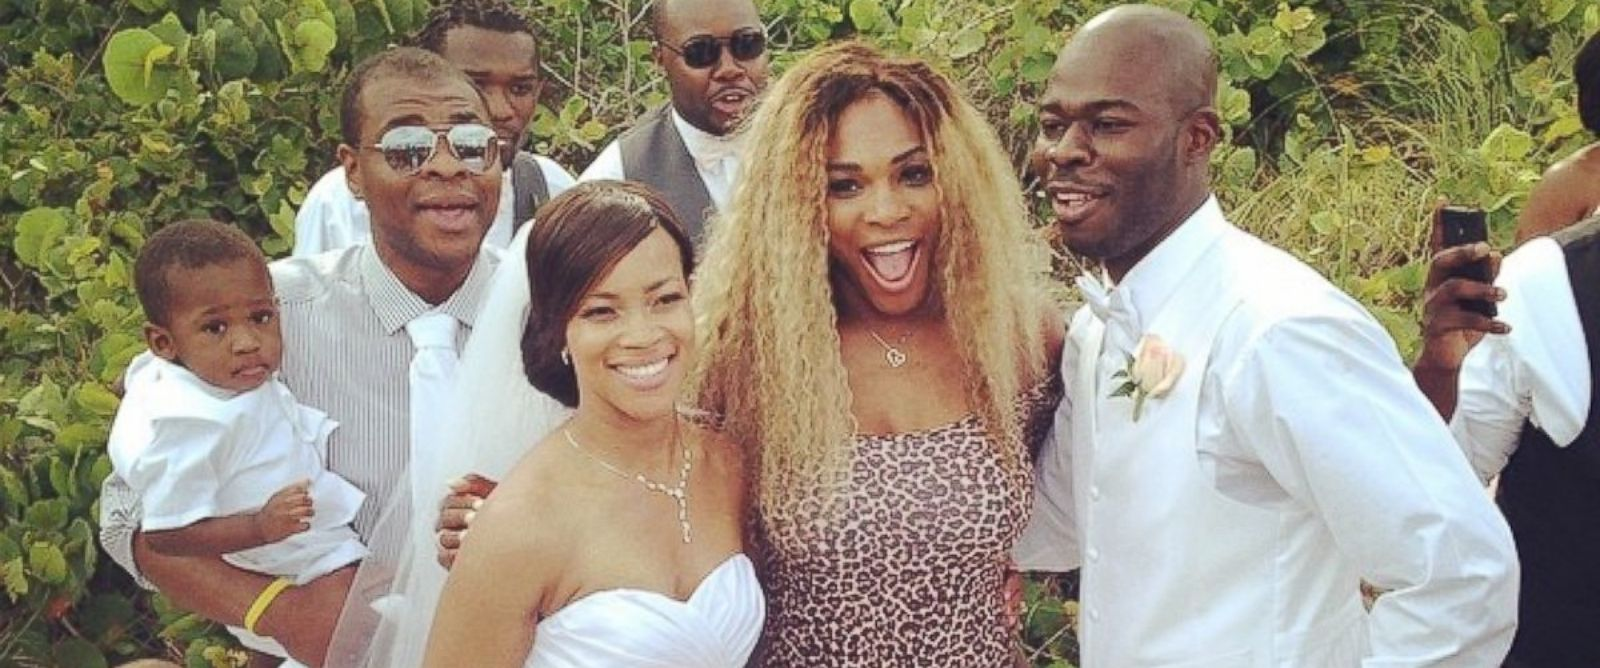 """PHOTO: Serena Williams posted this photo on Instagram on May 30, 2014 with the caption, """"Wedding crasher!! Congrats!"""""""